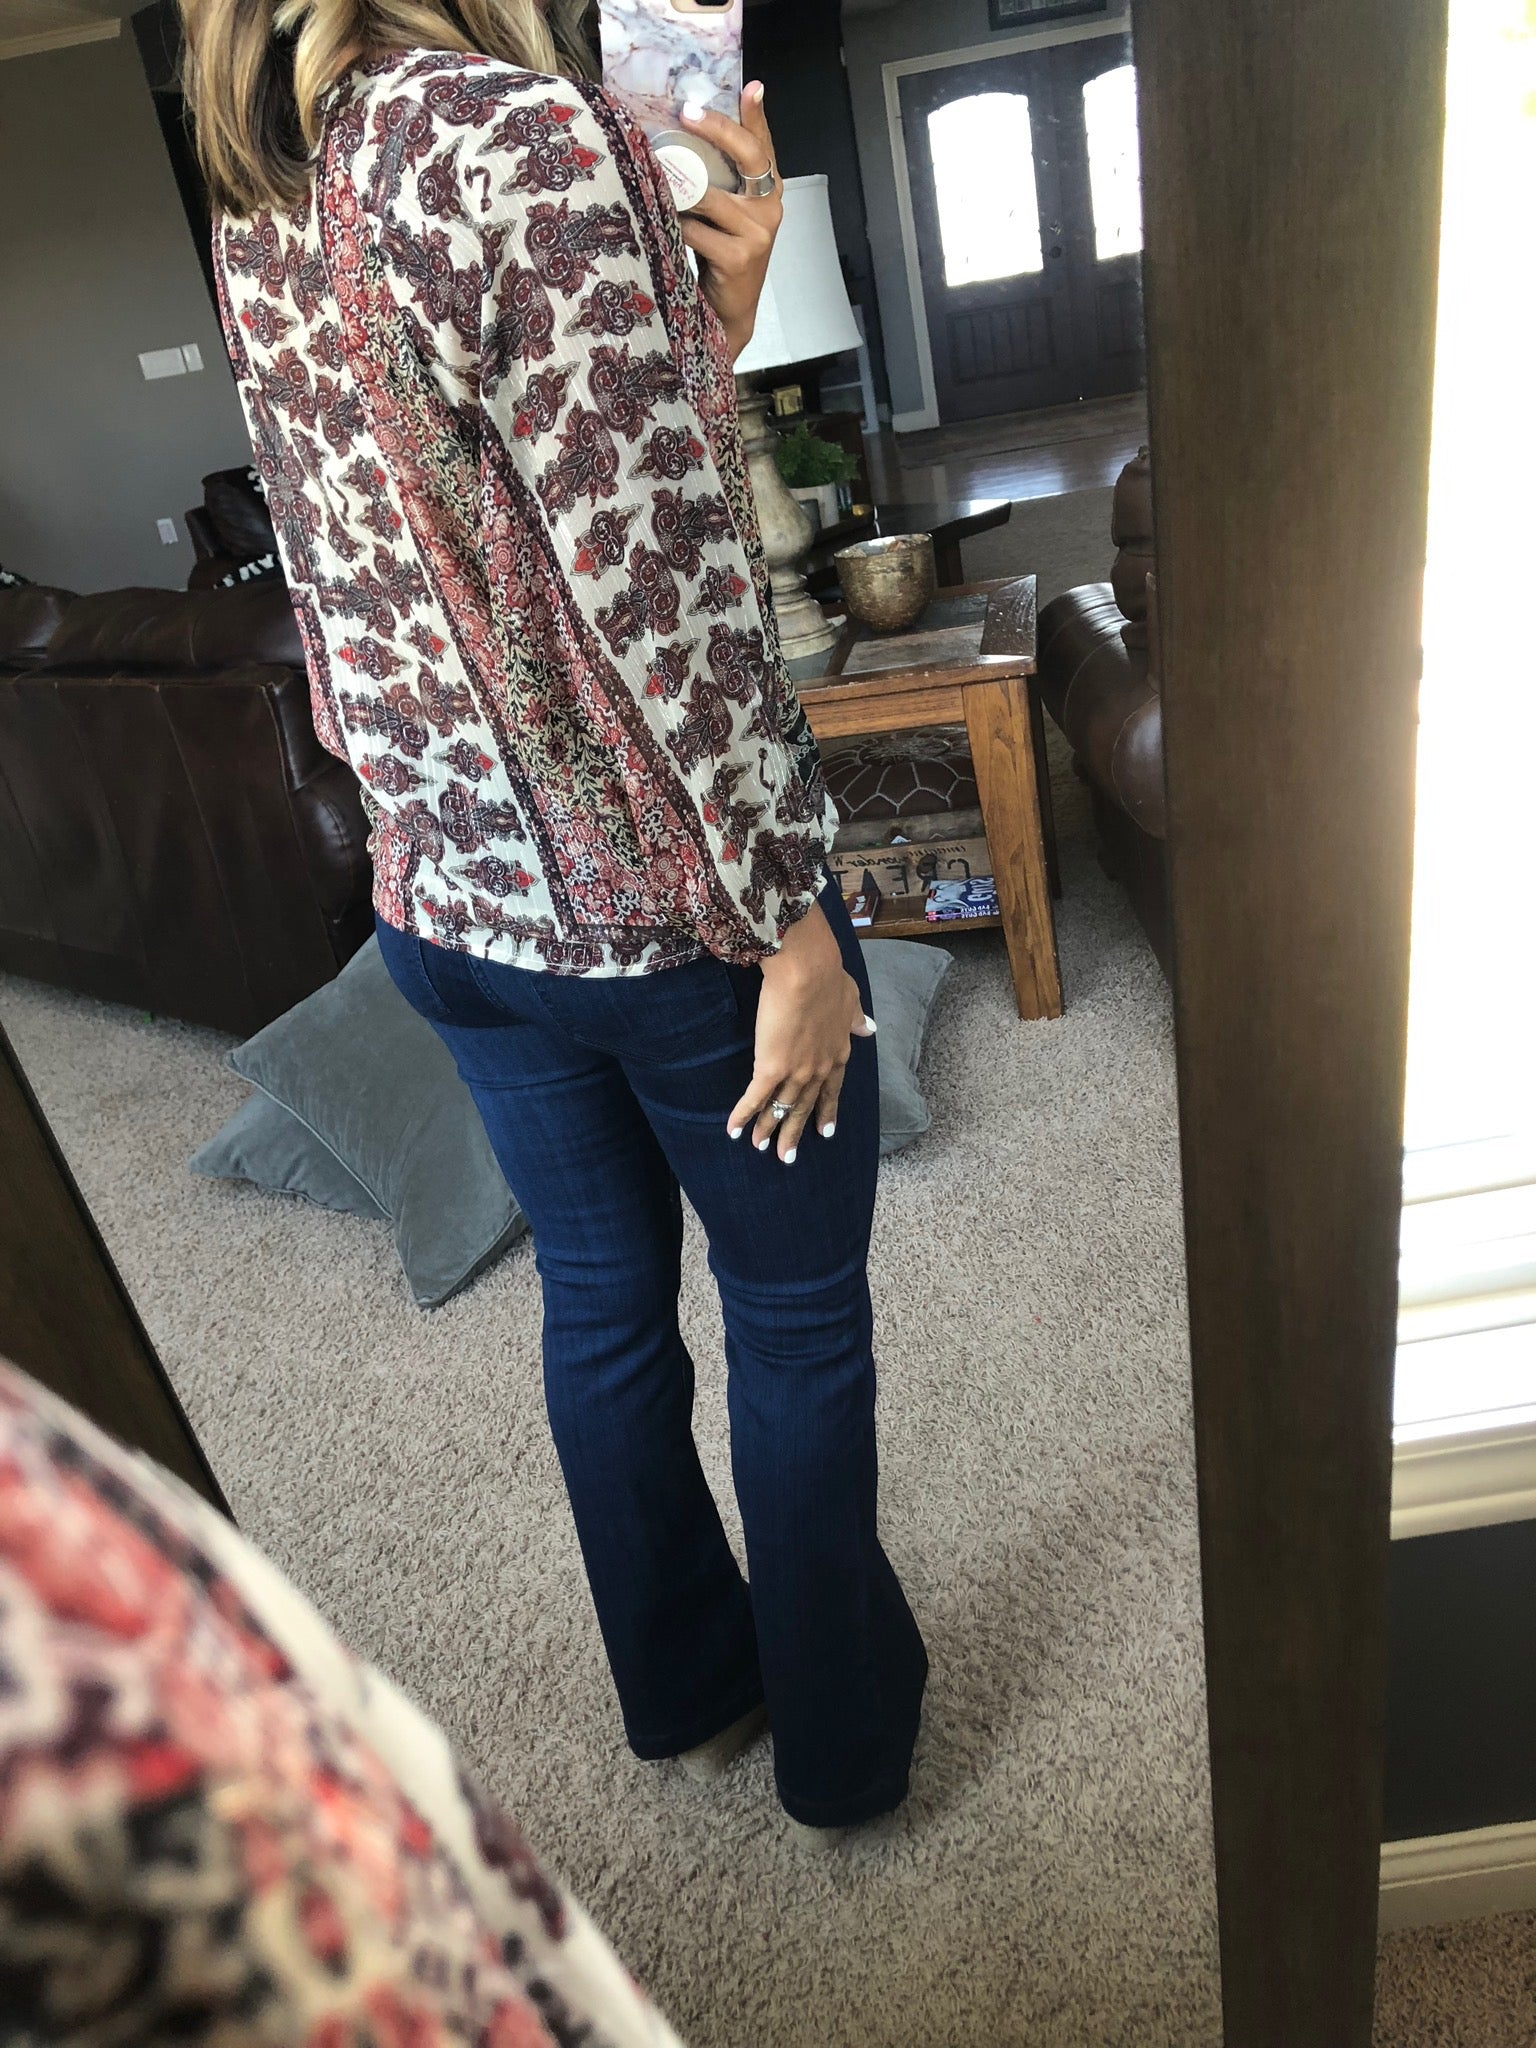 Slow Motion Cream and Burgundy Mixed Print Faux Wrap 3/4 Sleeve